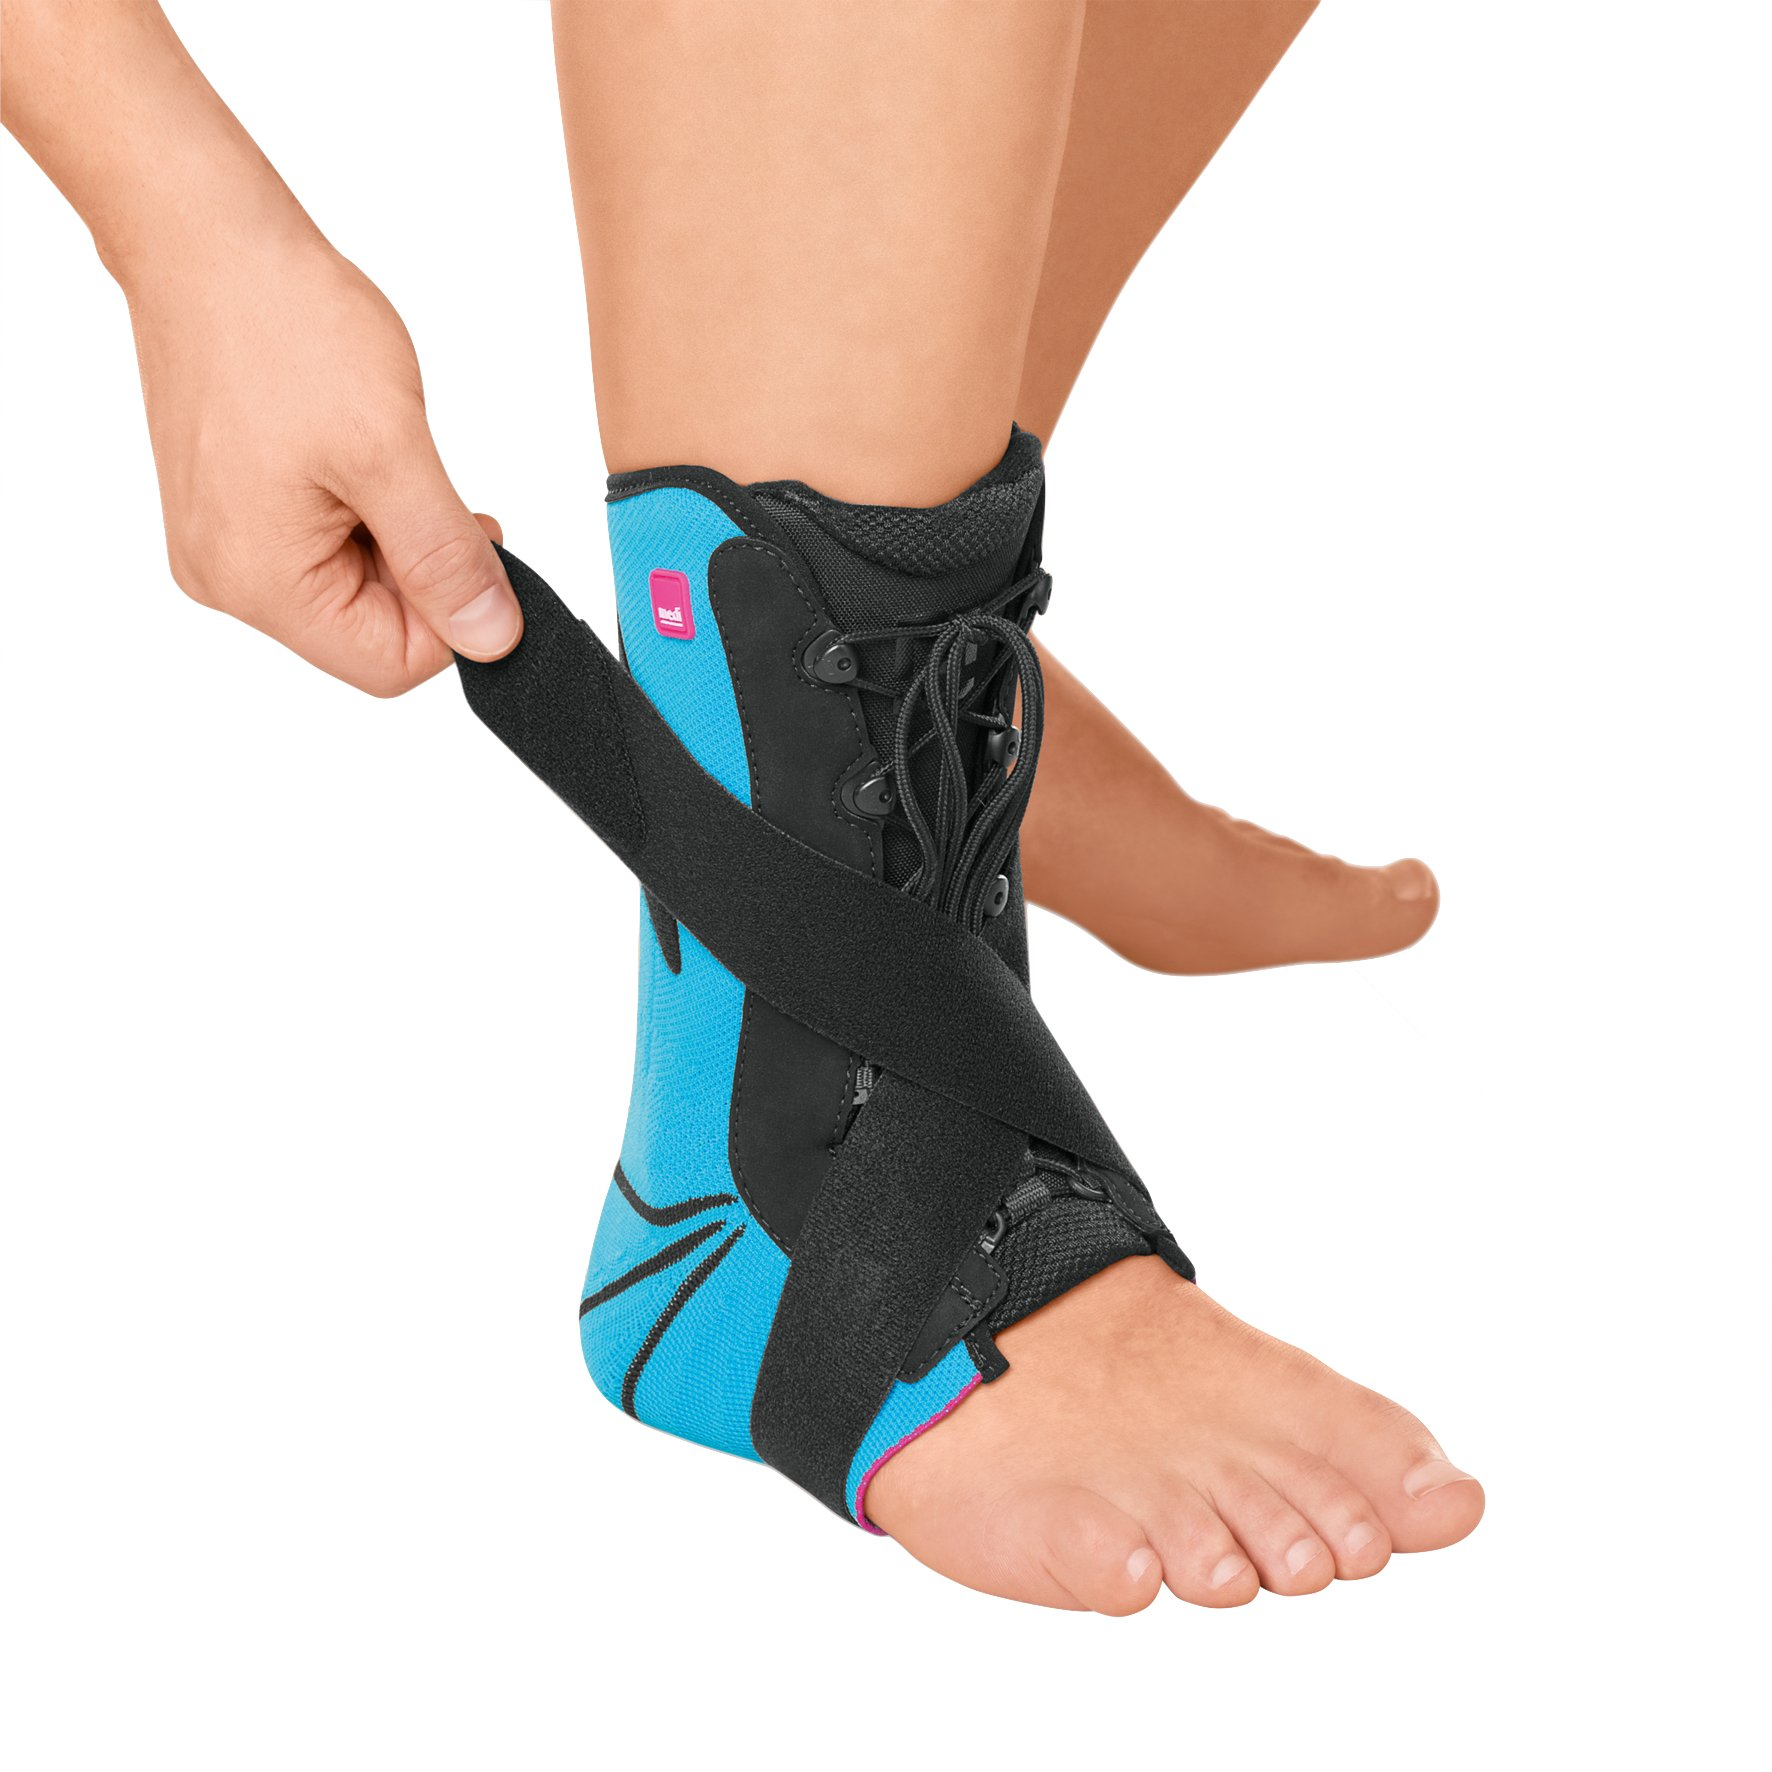 Medi Levamed Stabili-Tri Knit Ankle Support (Blue) Right Size III